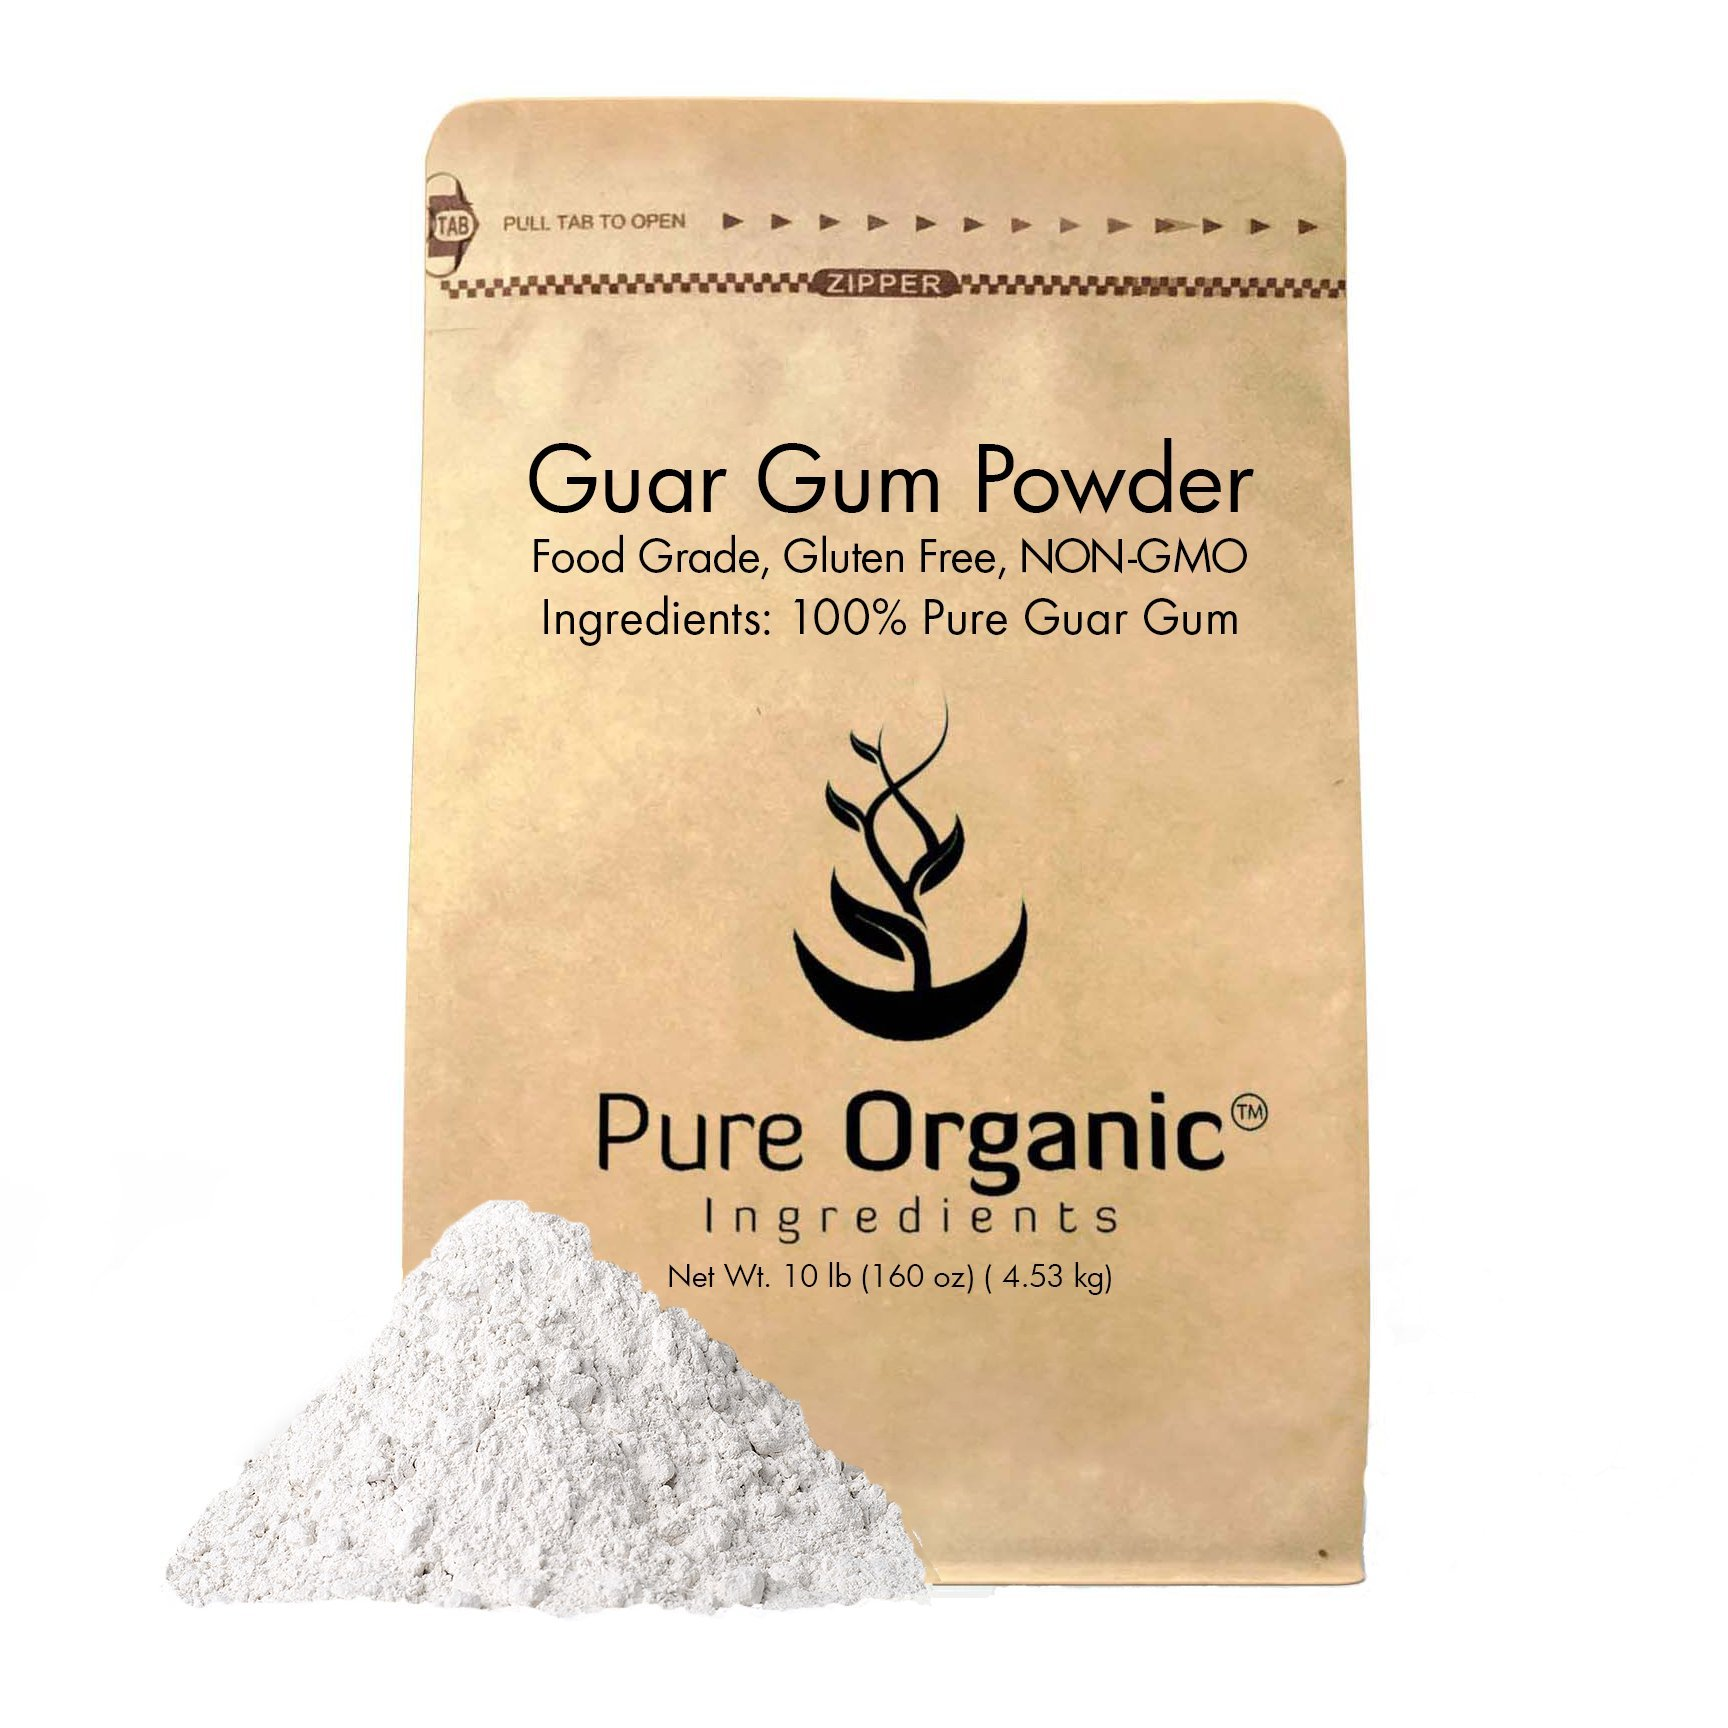 Guar Gum Powder (10 lb.) by Pure Organic Ingredients, Food Grade, Gluten-Free, Non-GMO, Thickening Agent